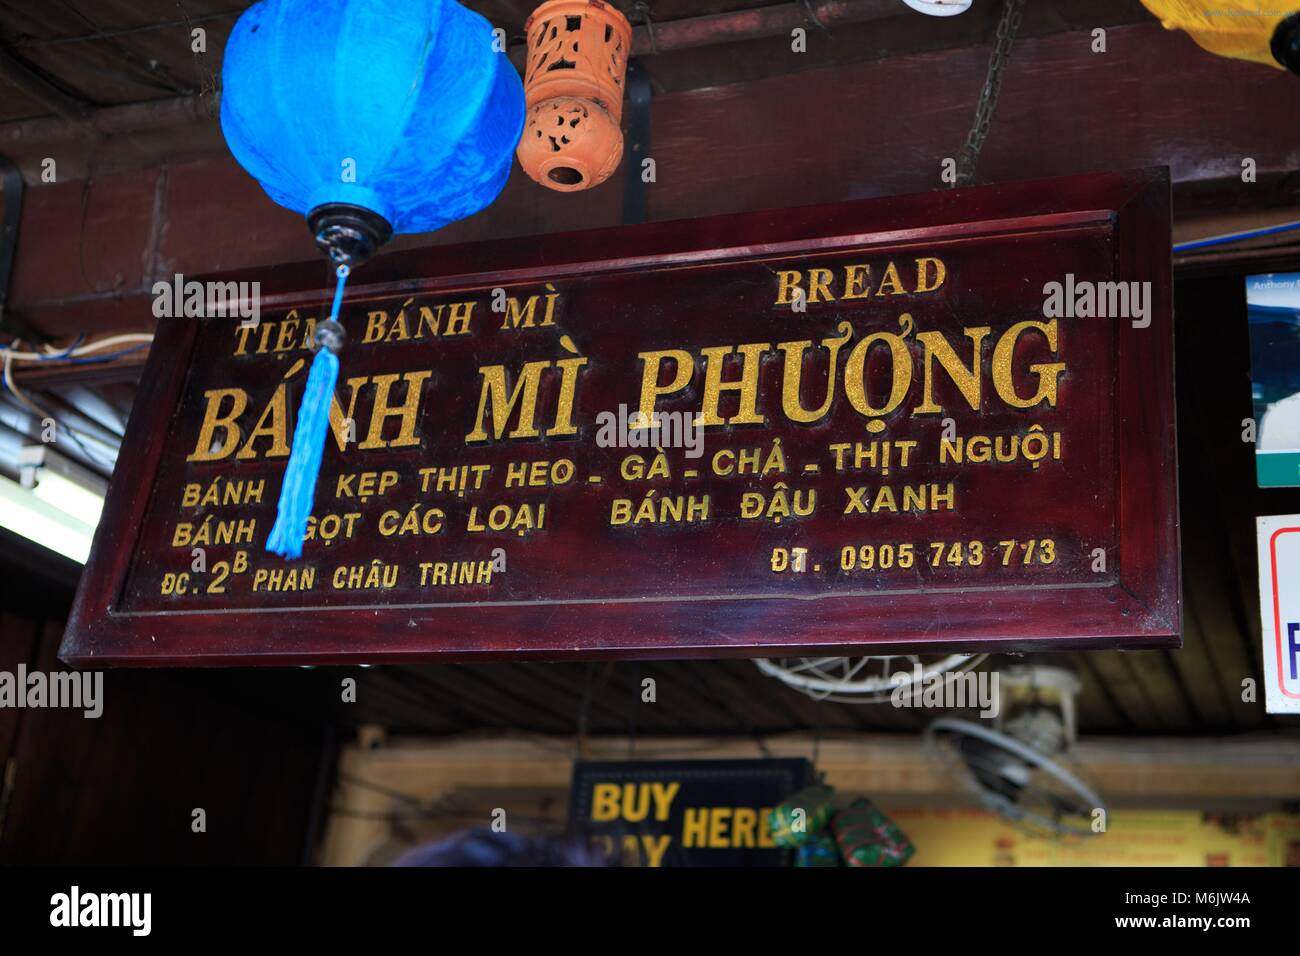 The entrance to the famous Banh Mi Phuong restaurant in Hoi An, Vietnam Stock Photo